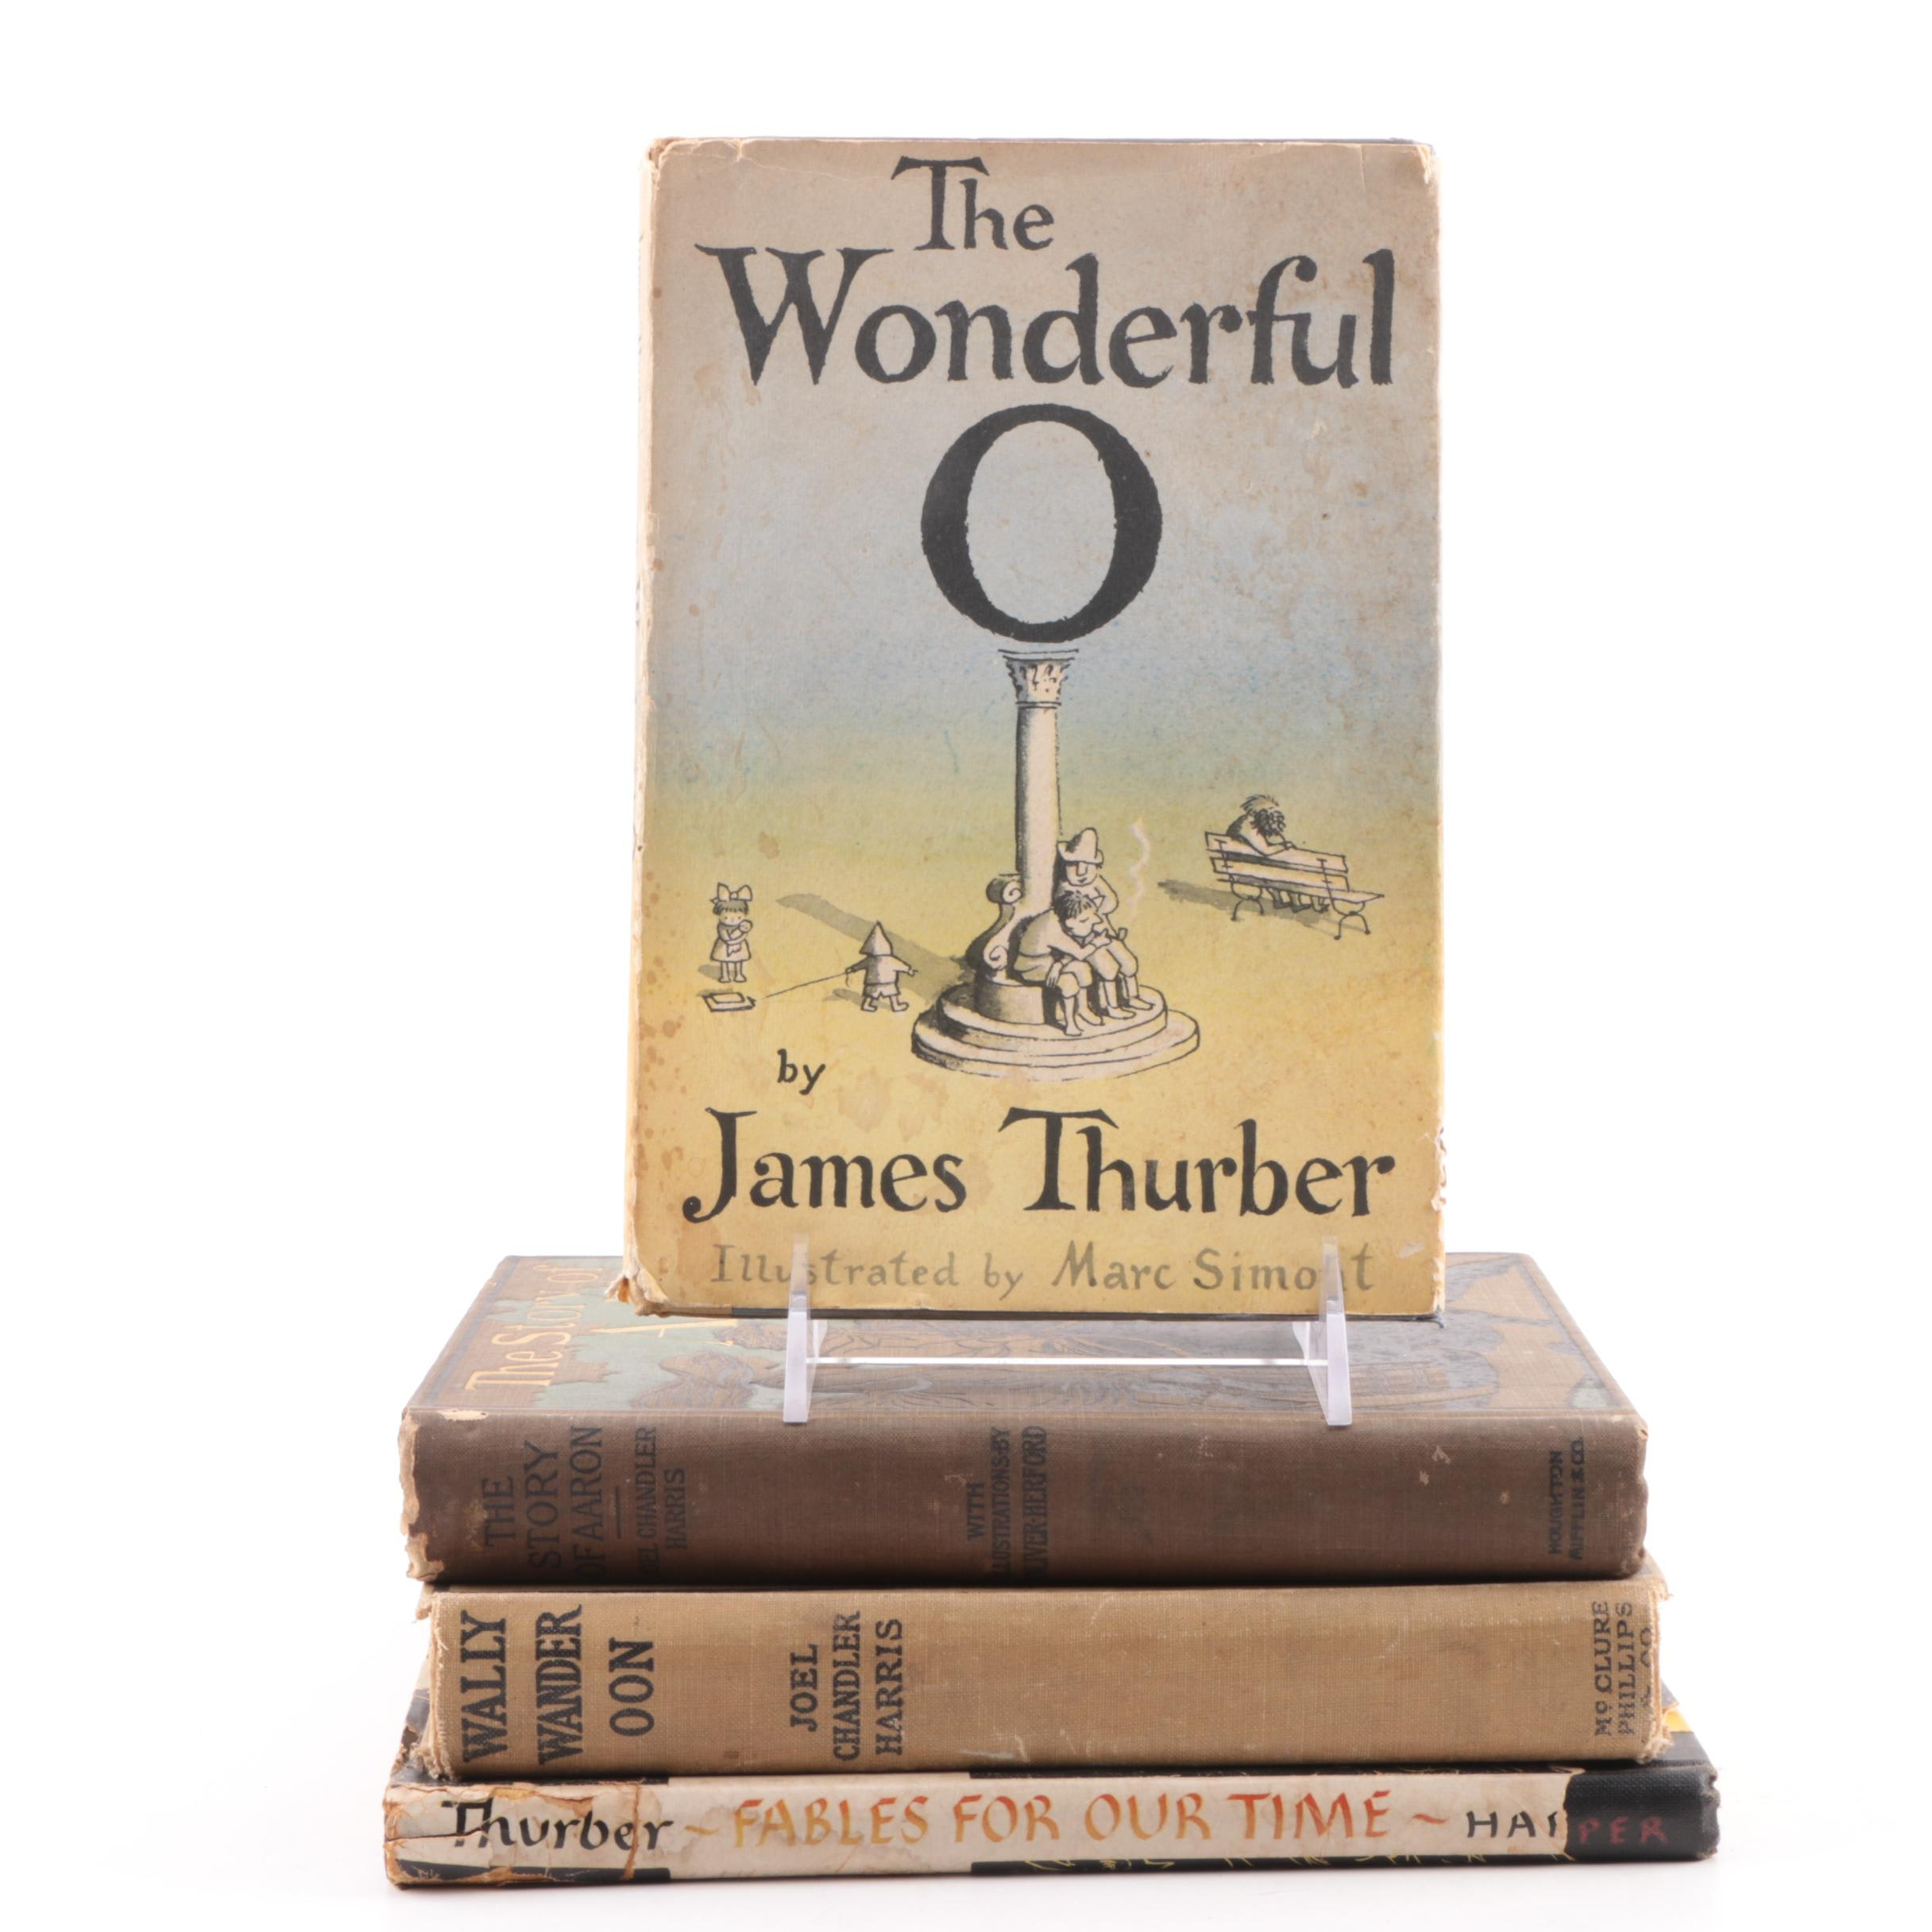 Vintage and Antique Books by Joel Chandler Harris and James Thurber